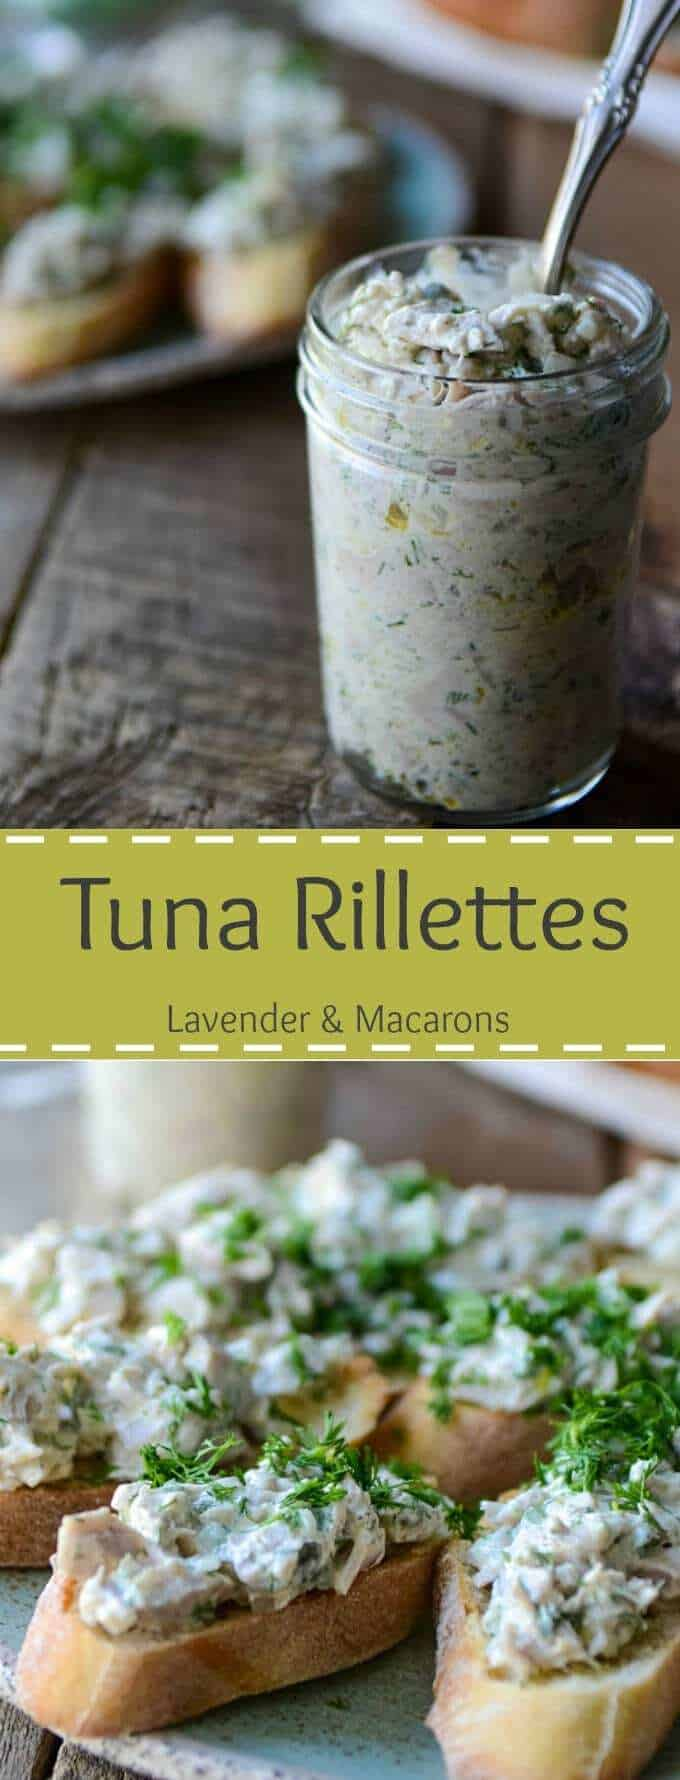 Tuna Rillettes | Tuna Pâté | Tuna Spread | Tuna Pate Recipe